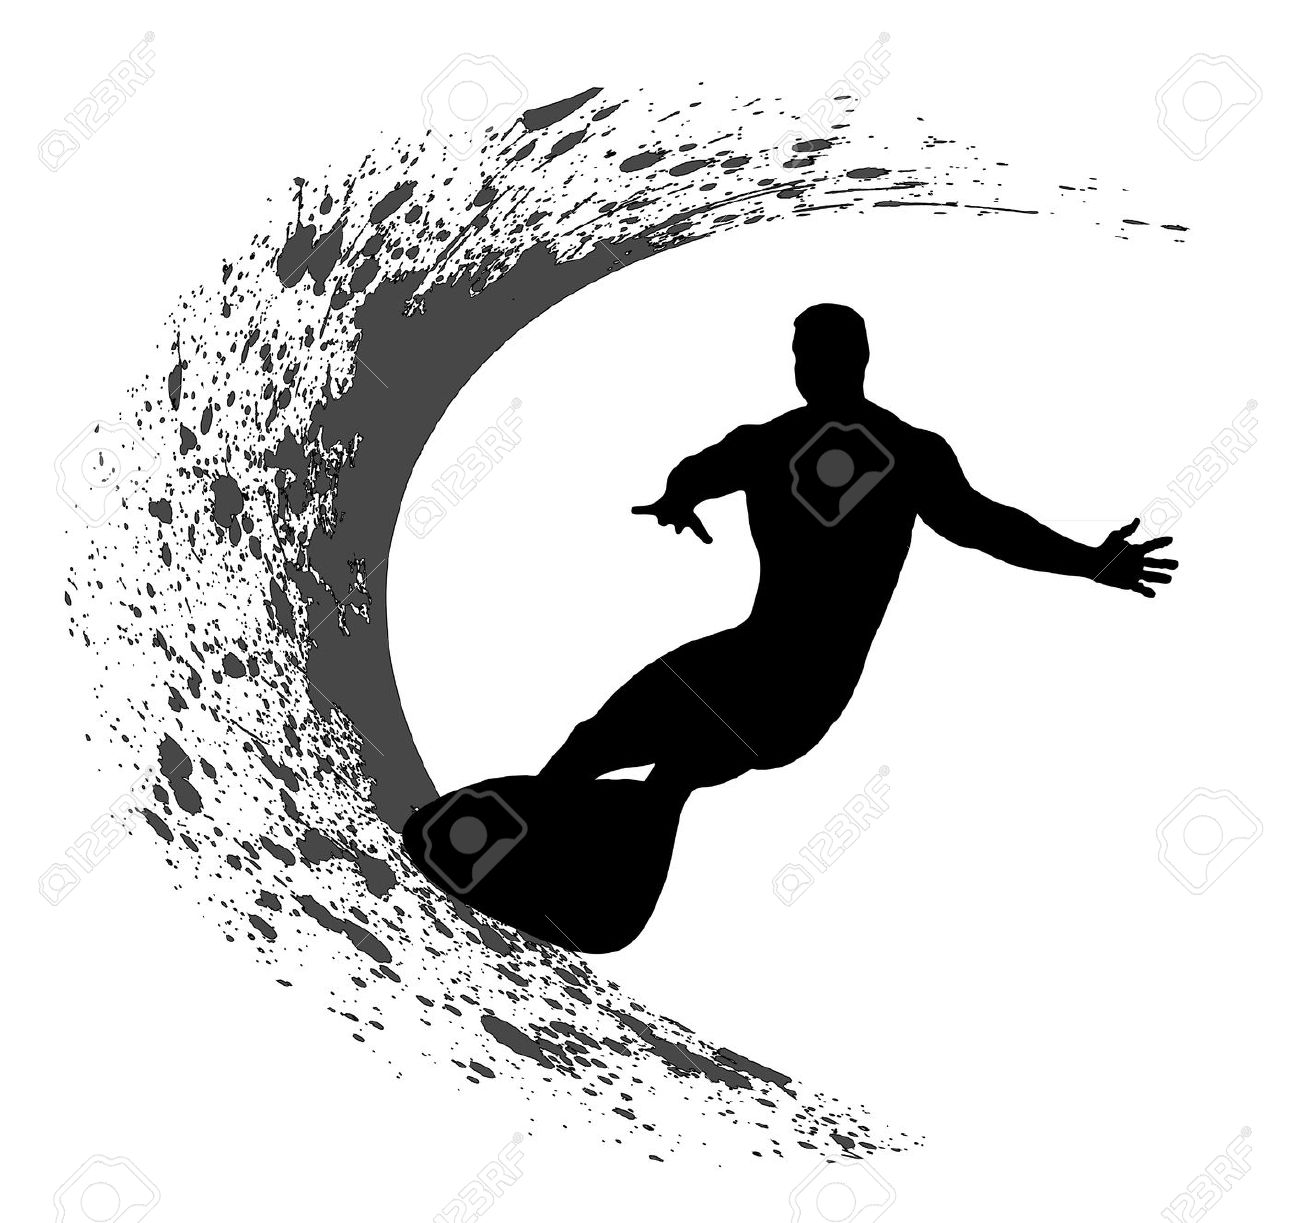 Surfer Silhouette Free Clipart.